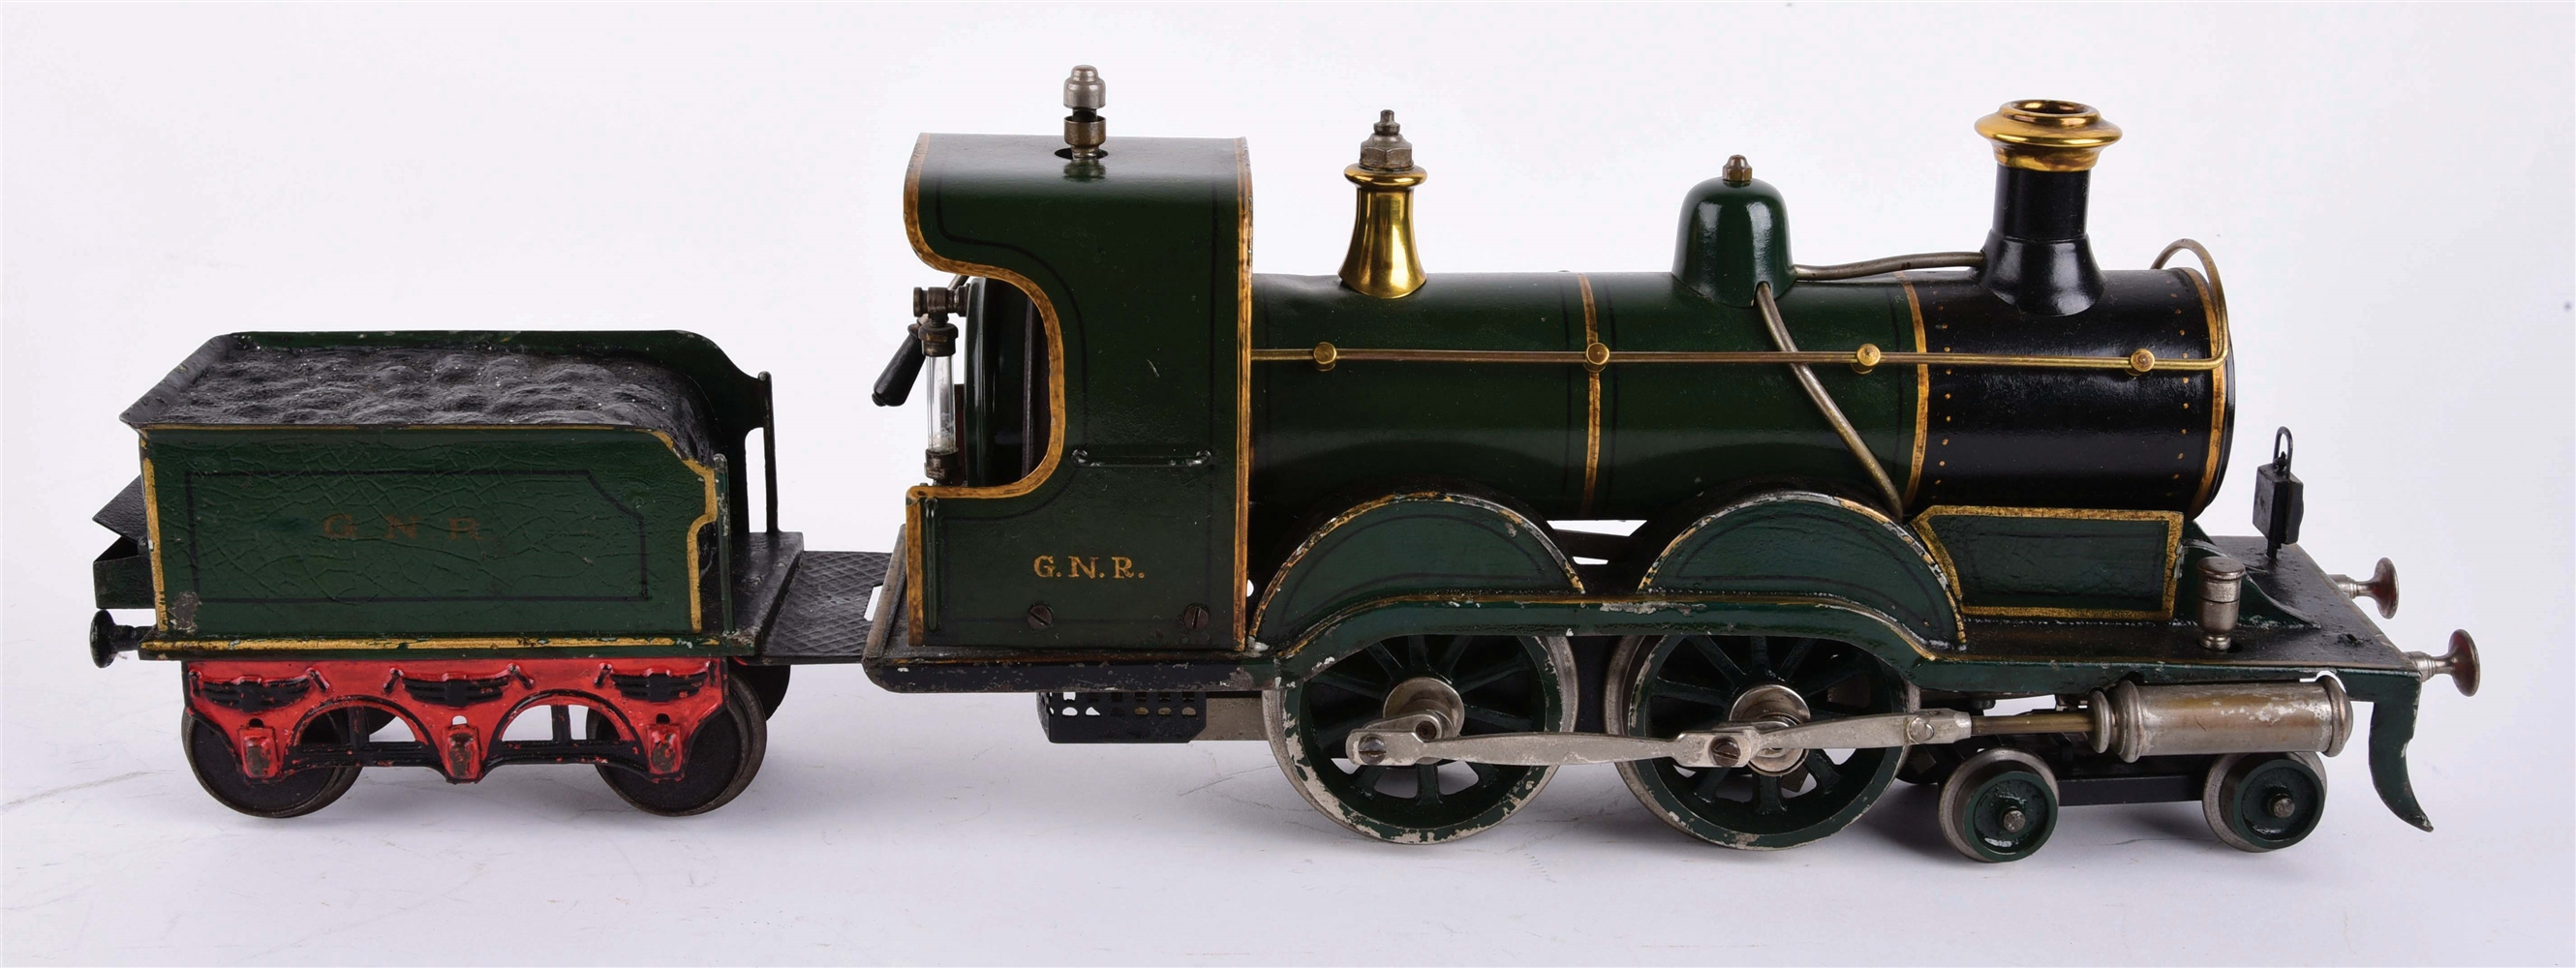 PRE-WAR GERMAN HAND-PAINTED BING STEAM ENGINE AND MATCHING TENDER.